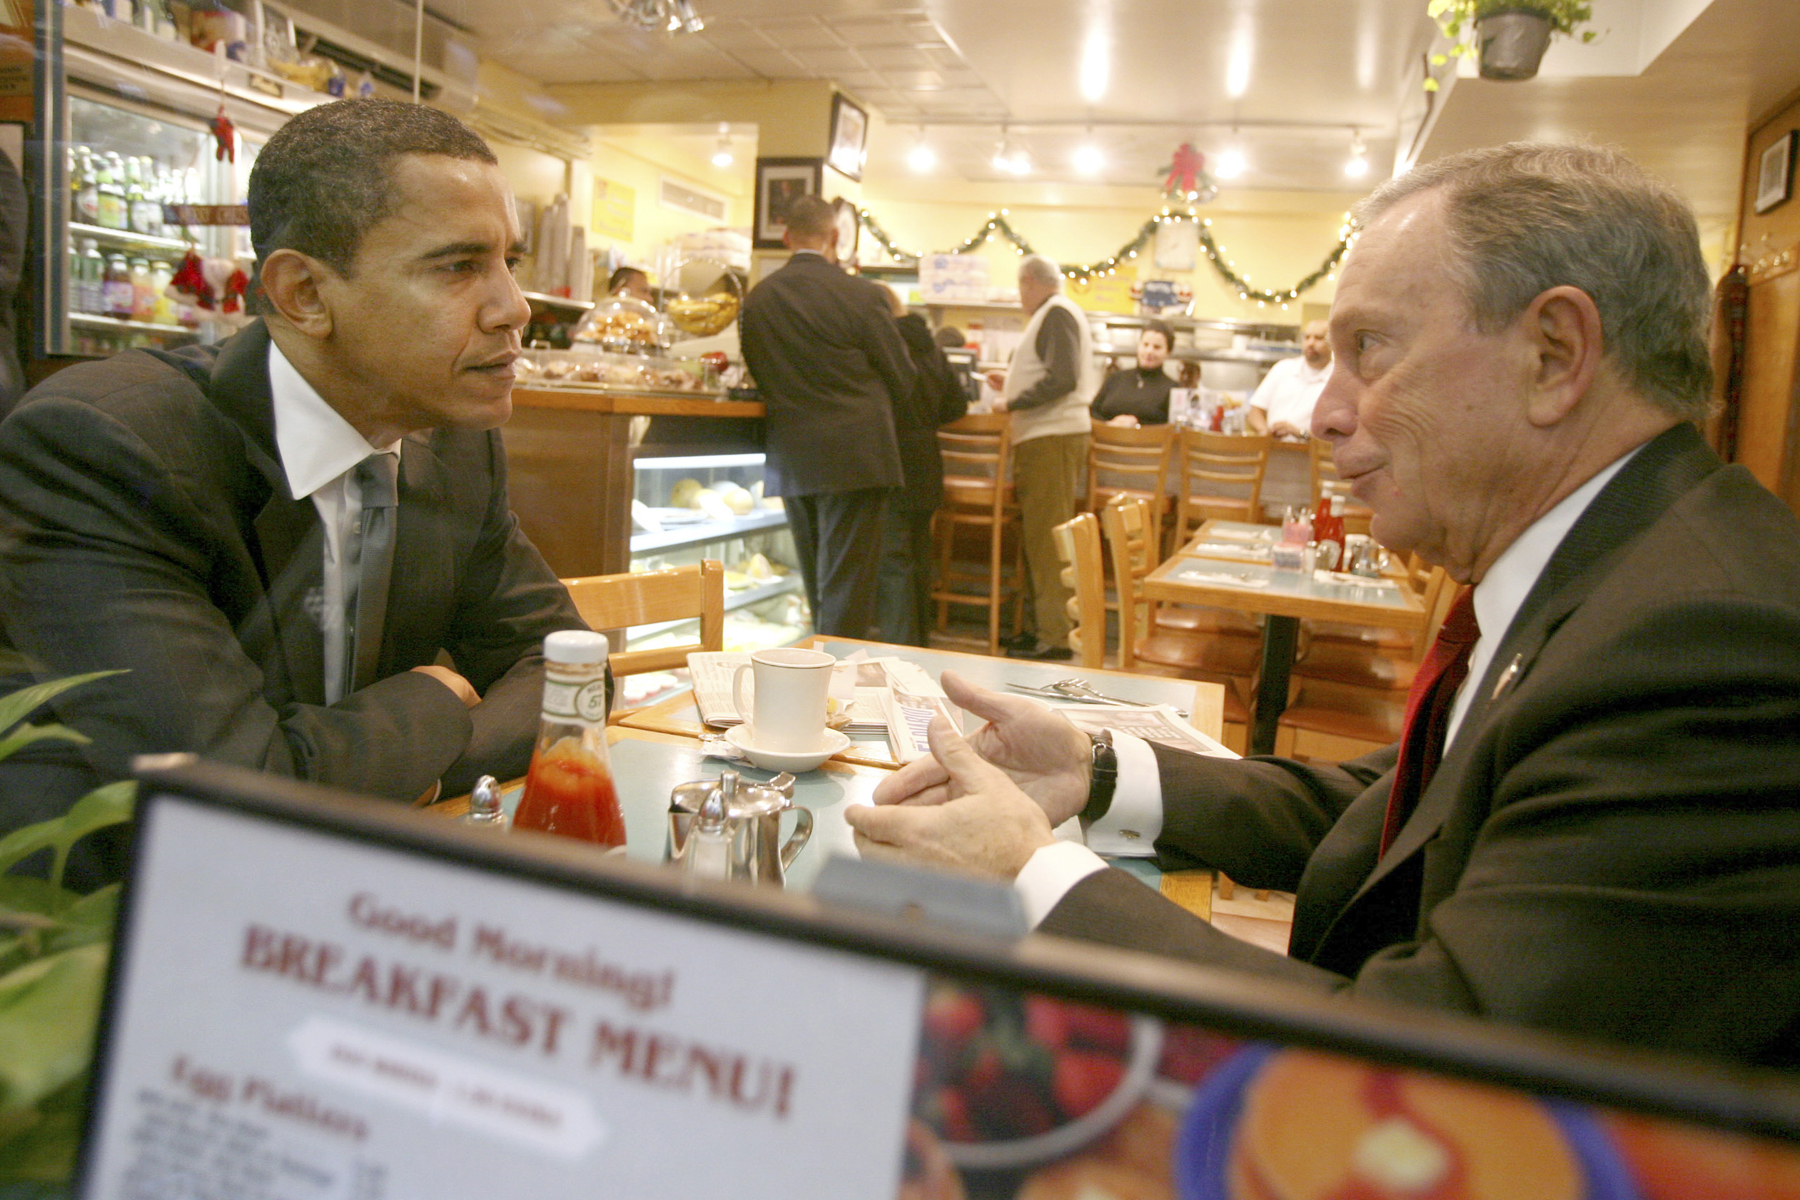 Bloomberg has breakfast with Barack Obama at a diner in New York City on Nov. 30, 2007, before Obama was elected president.